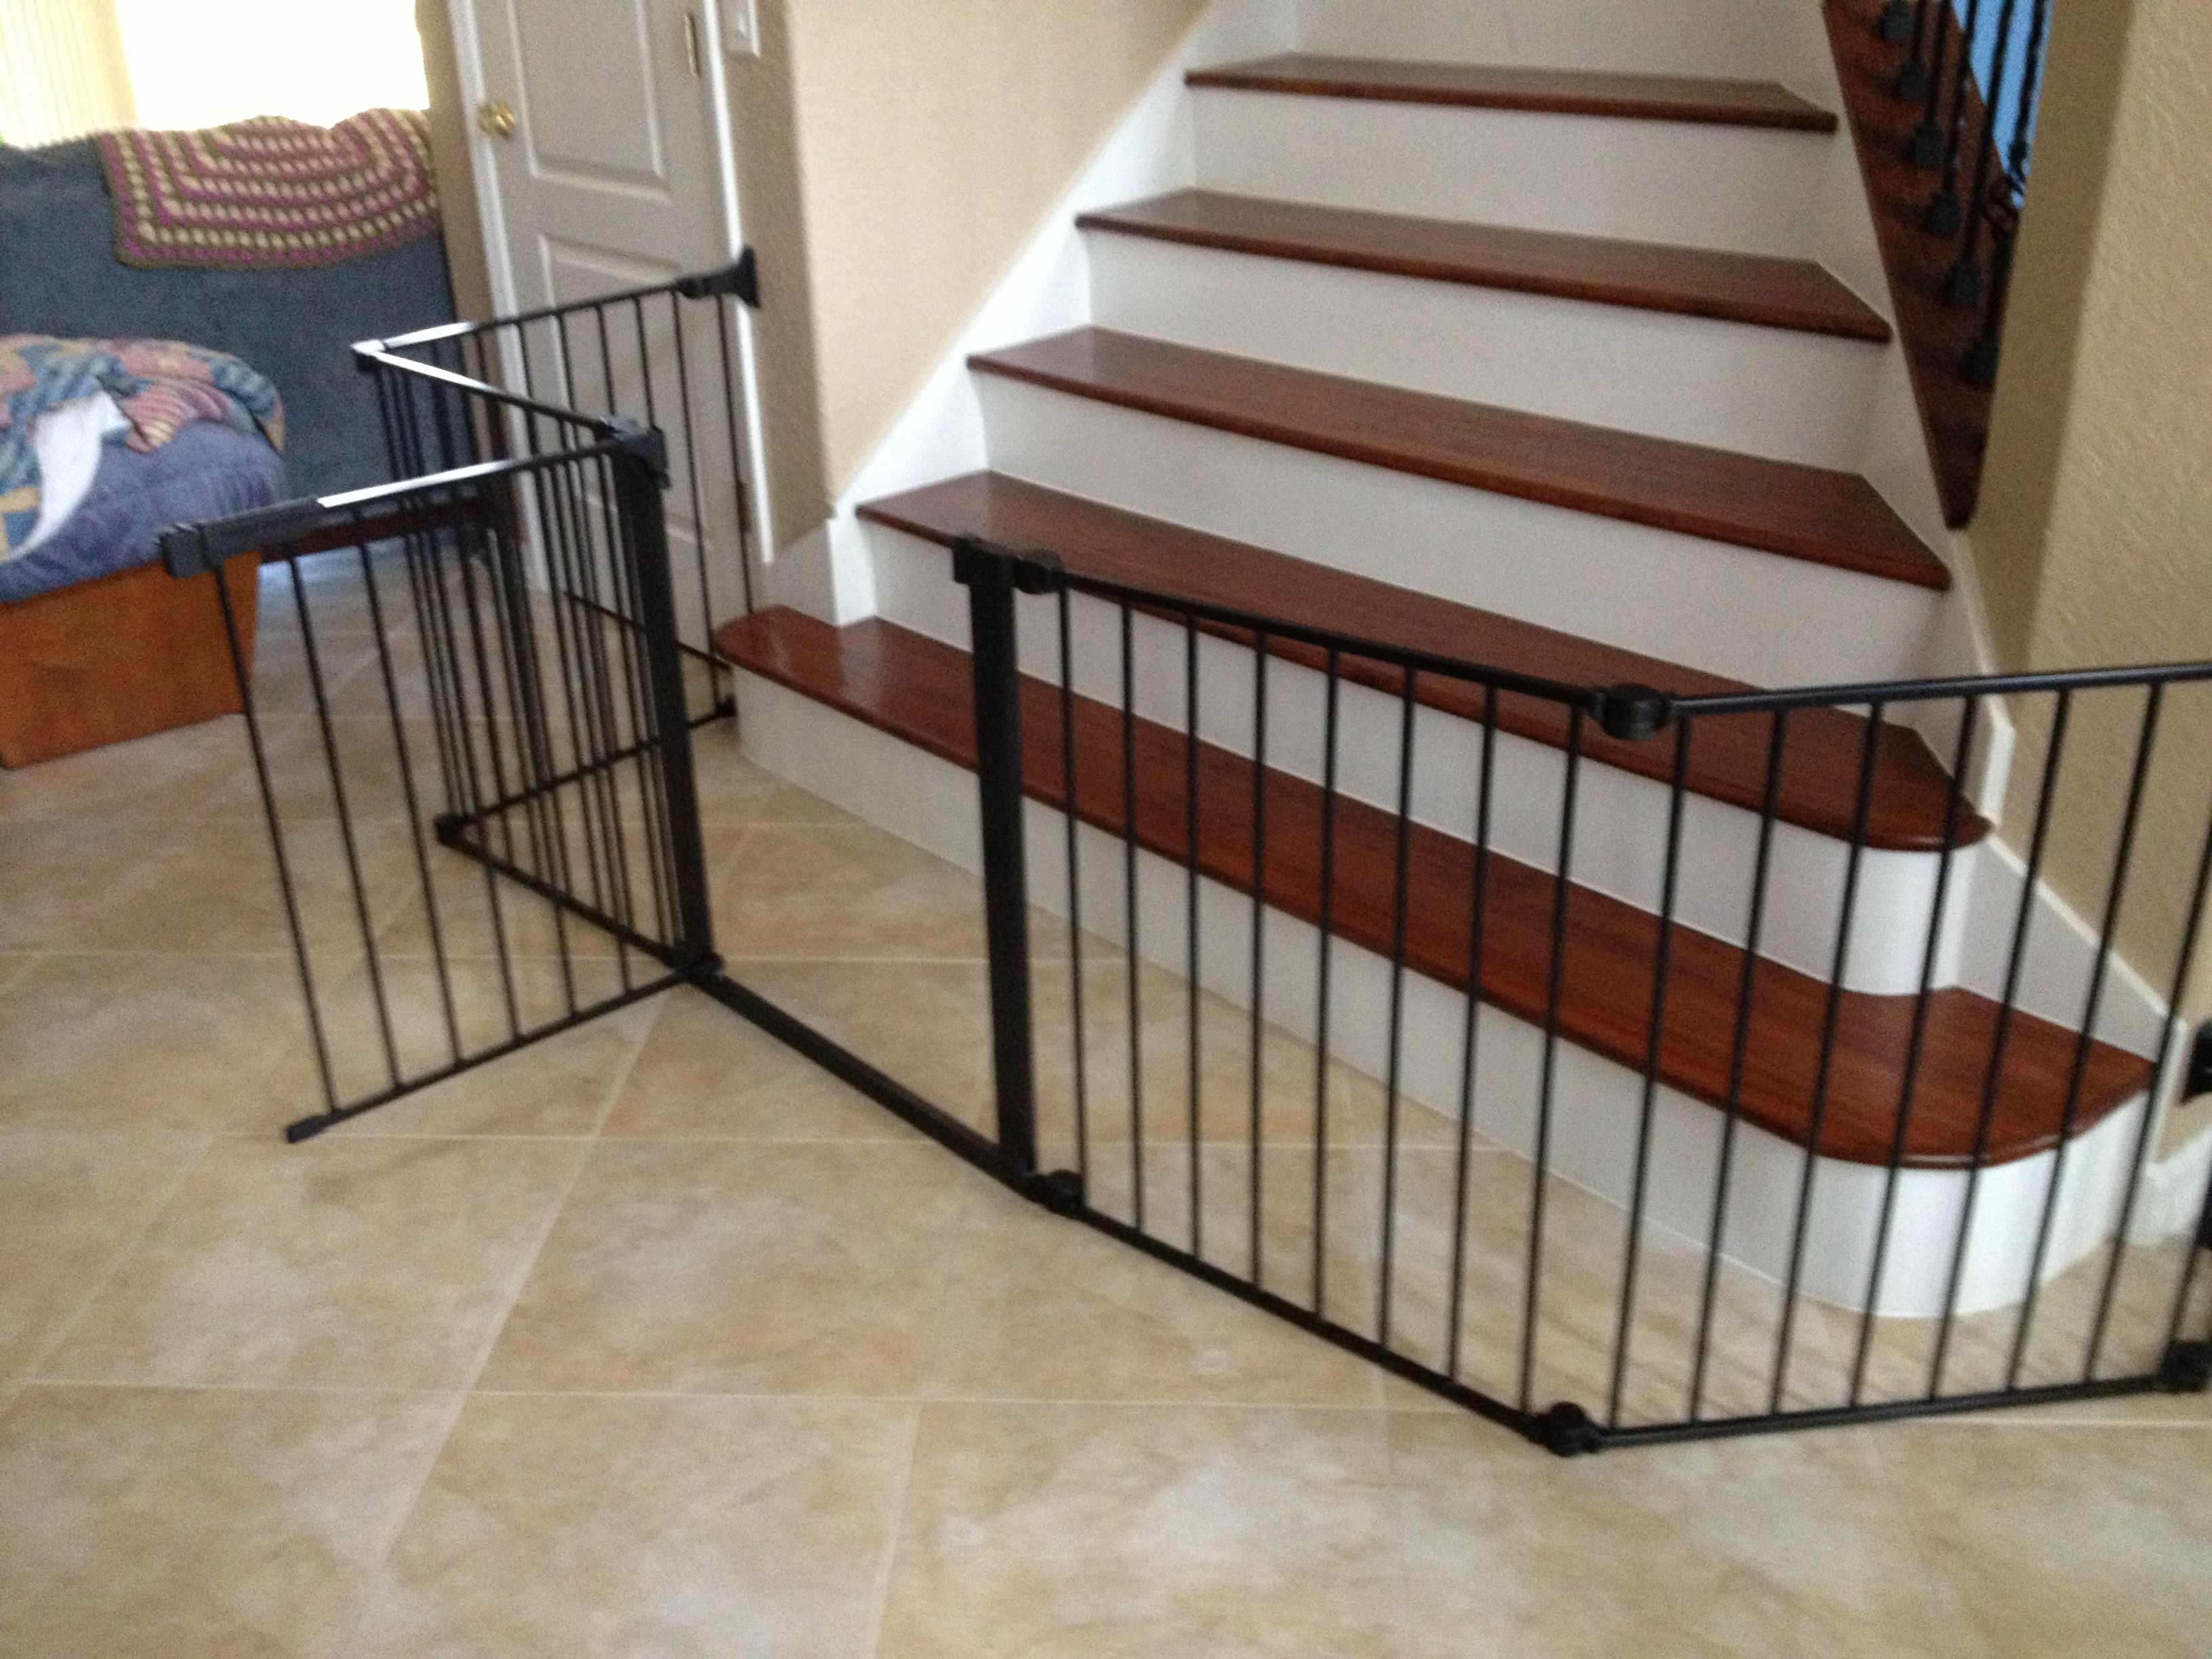 Breed Traphekje 1000 Ideas About Ba Gates Stairs On Pinterest Ba Gates